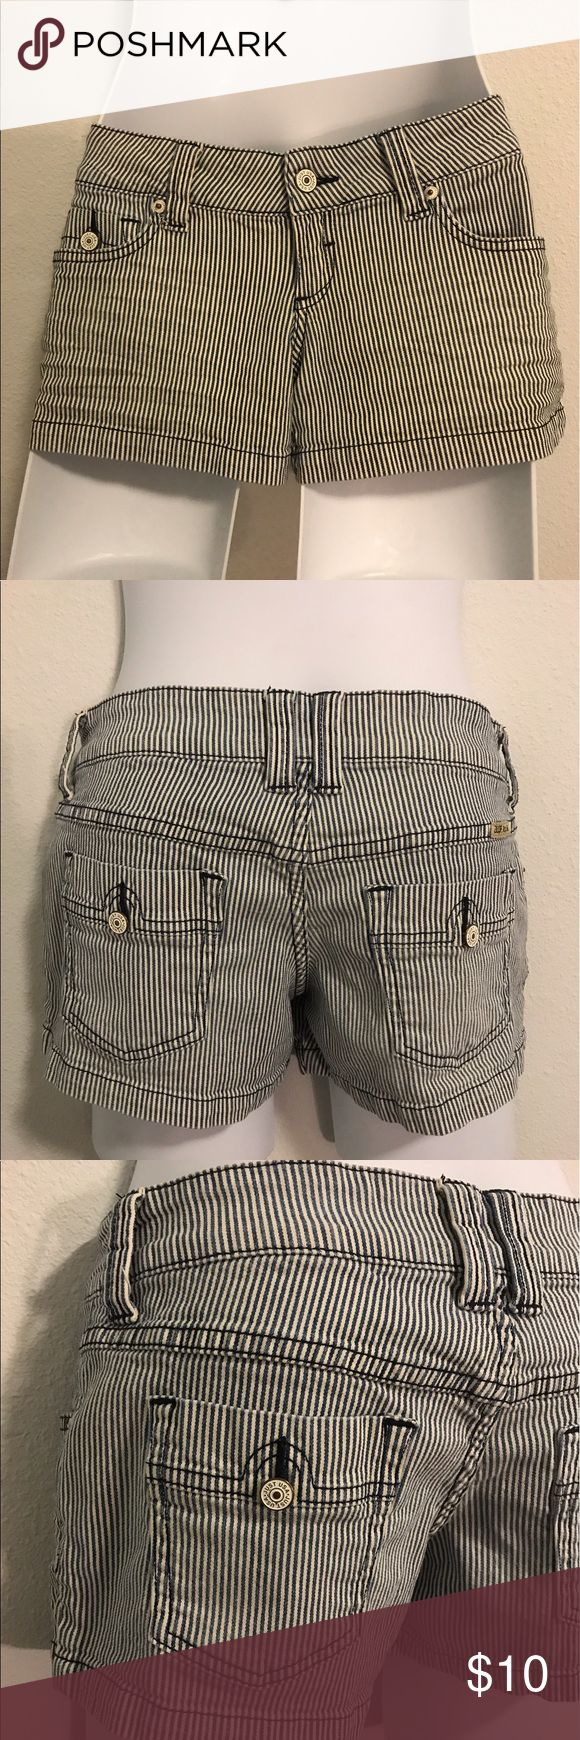 Pinup style shorts striped size XS Just USA shorts 90s pinup style shorts striped Just U.S.A Shorts Jean Shorts